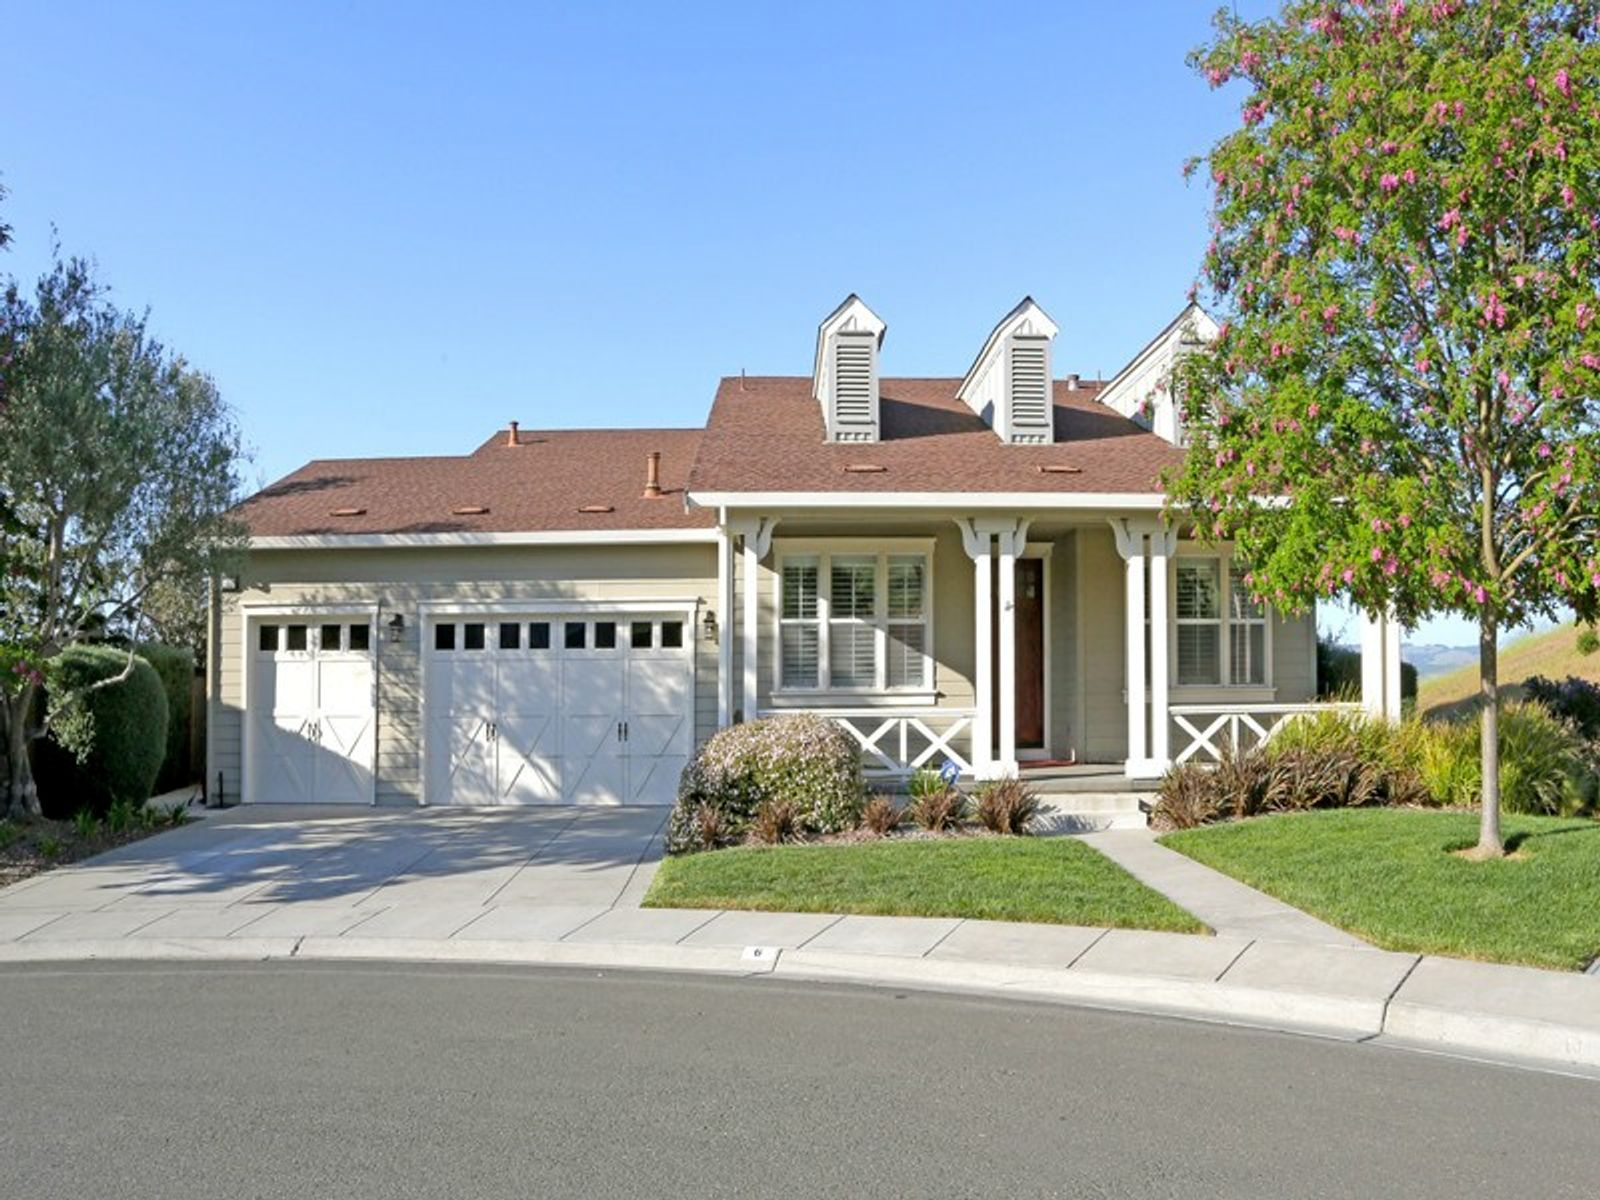 West Haven Heaven, Petaluma CA Single Family Home - Sonoma - Napa Real Estate